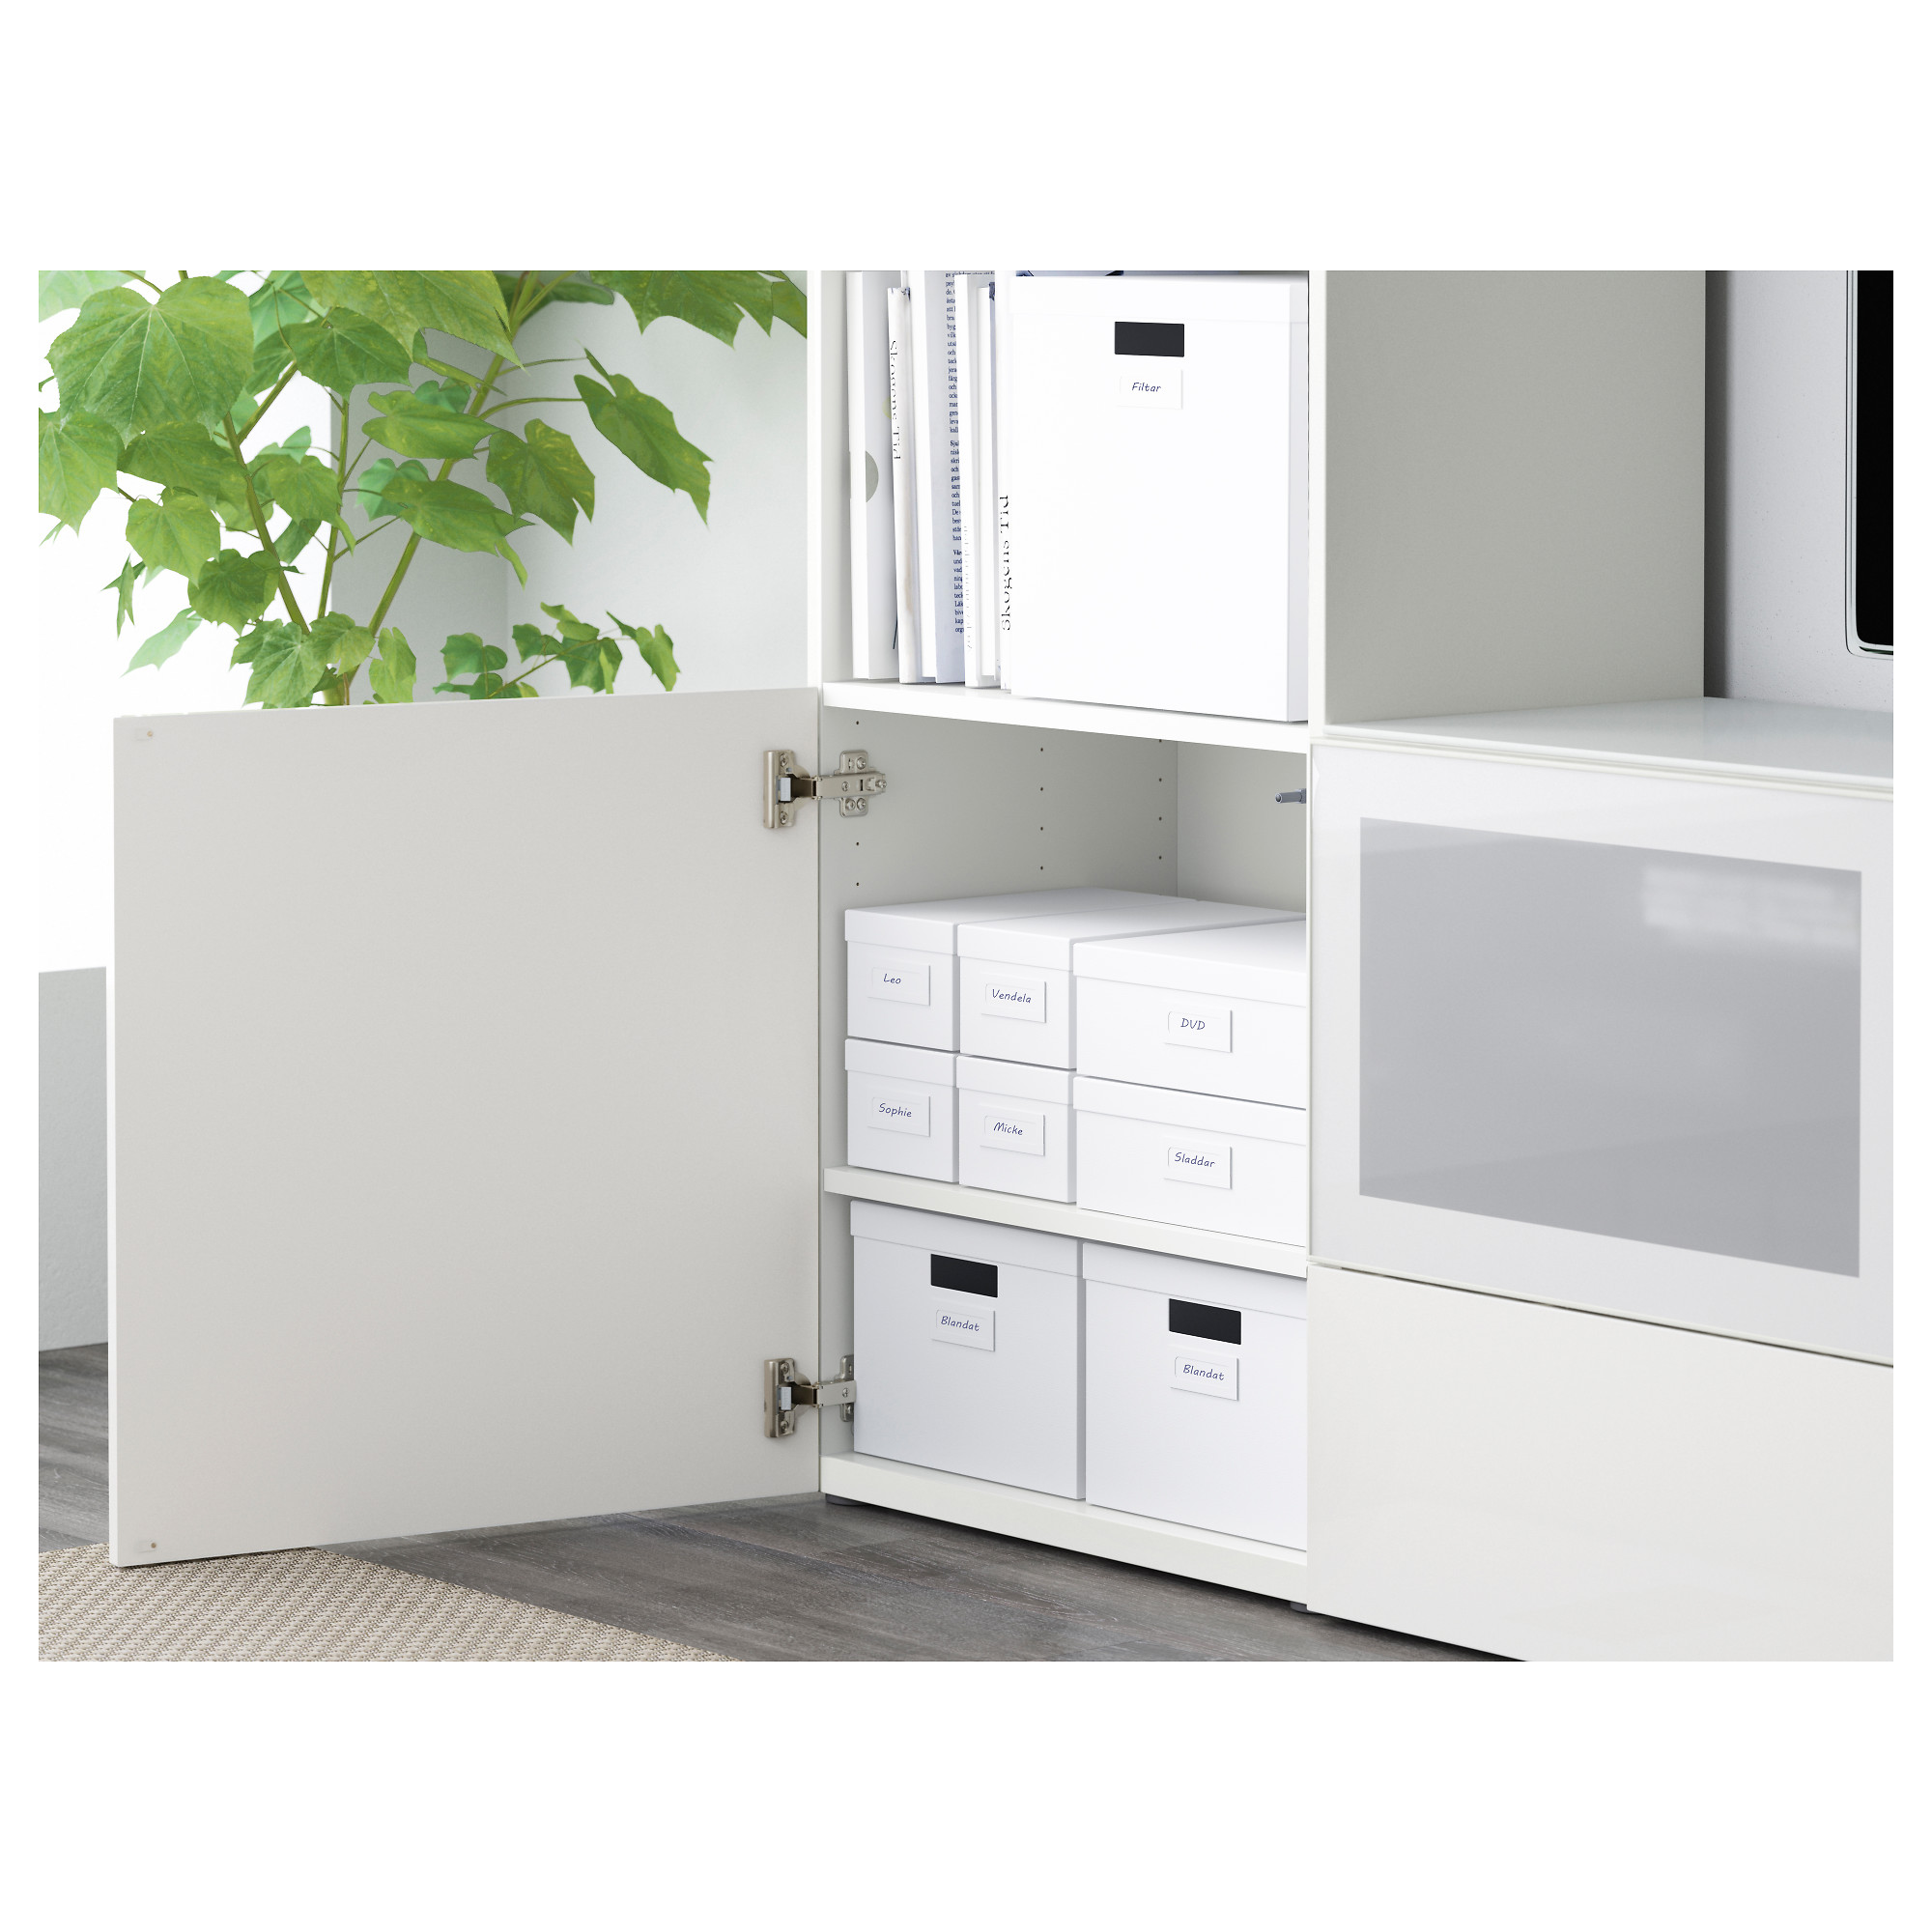 TJENA Box With Compartments   Black   IKEA